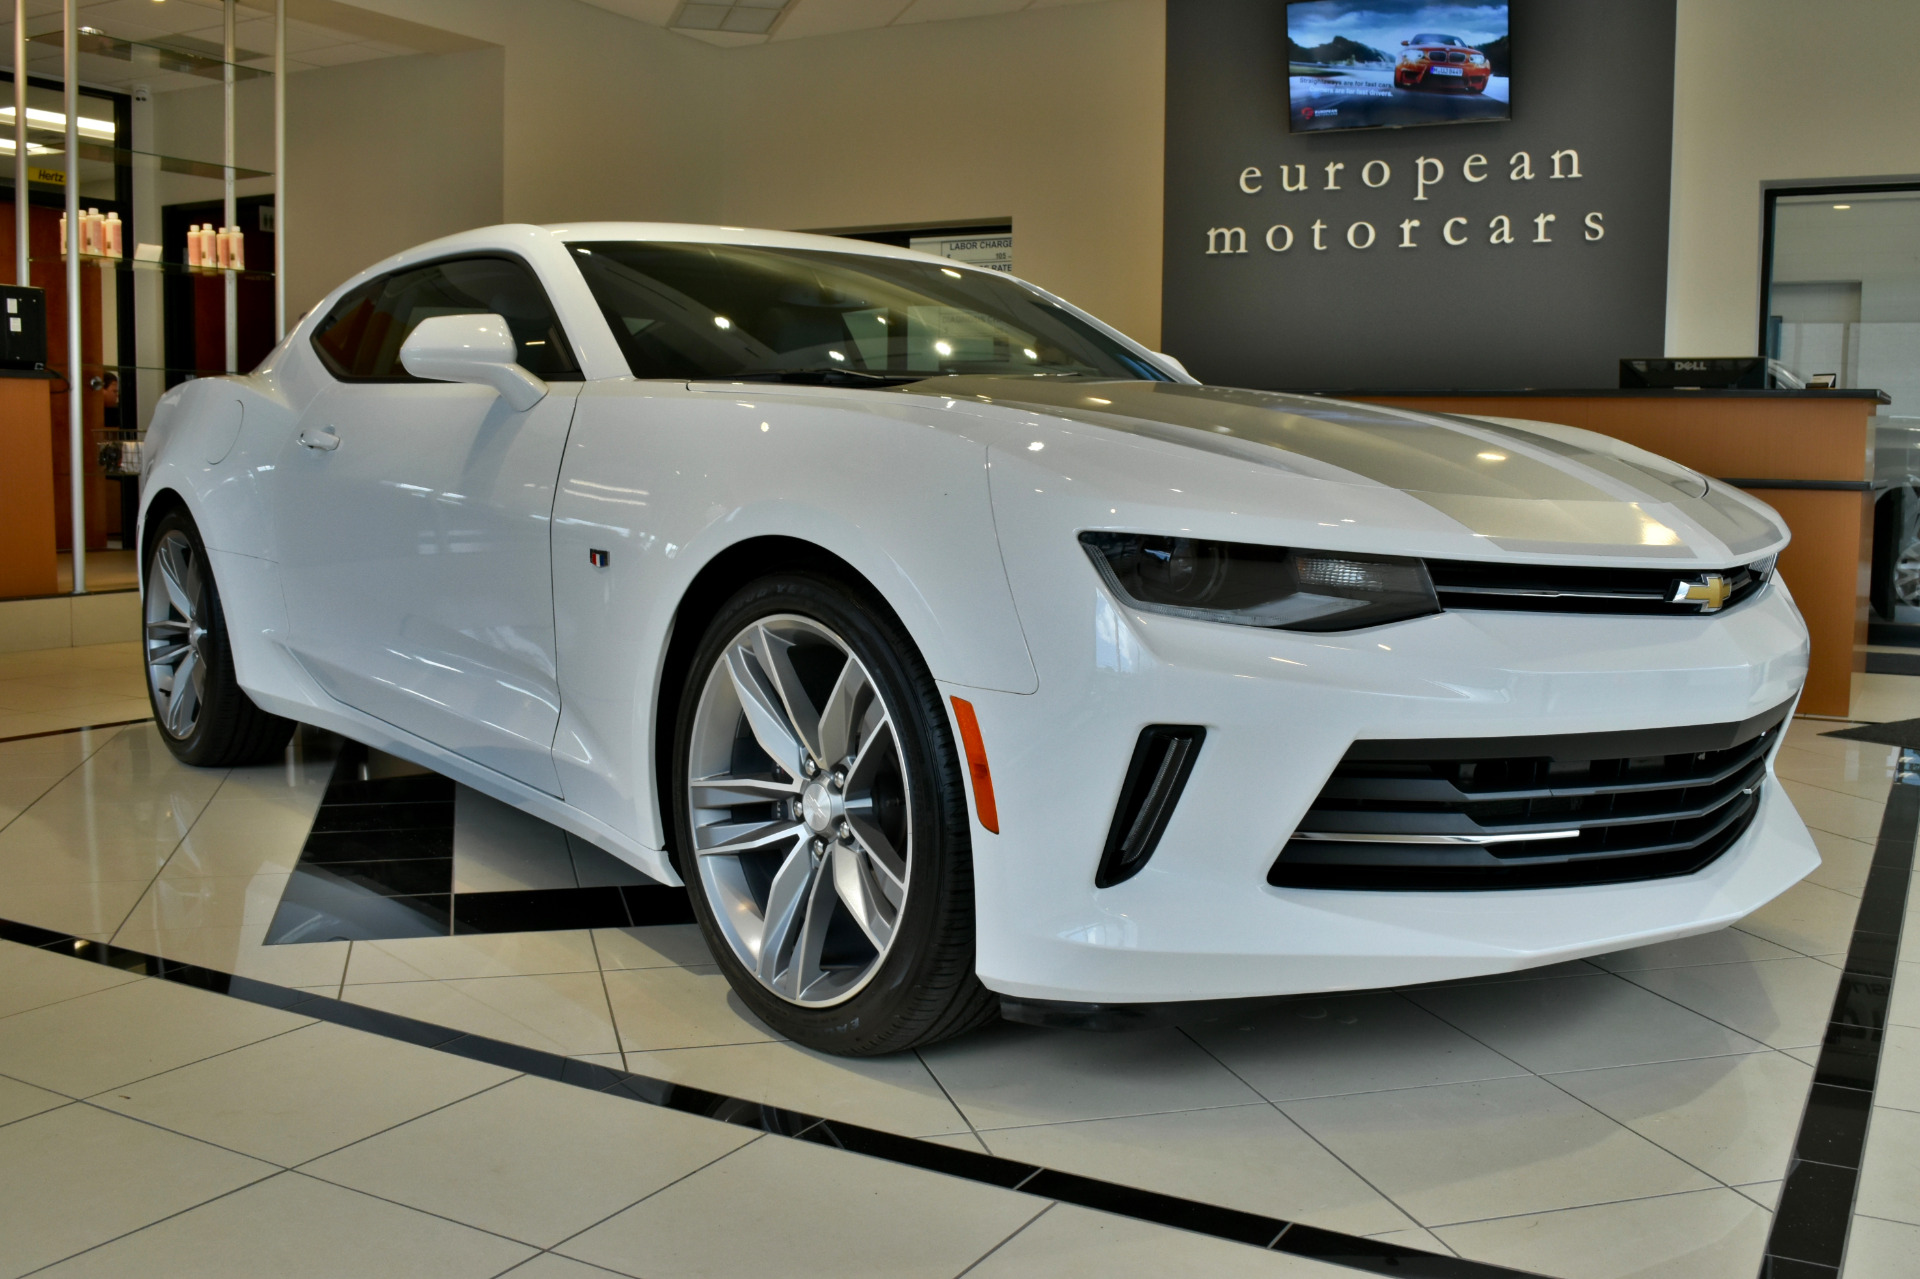 2016 Chevrolet Camaro LT for sale near Middletown CT